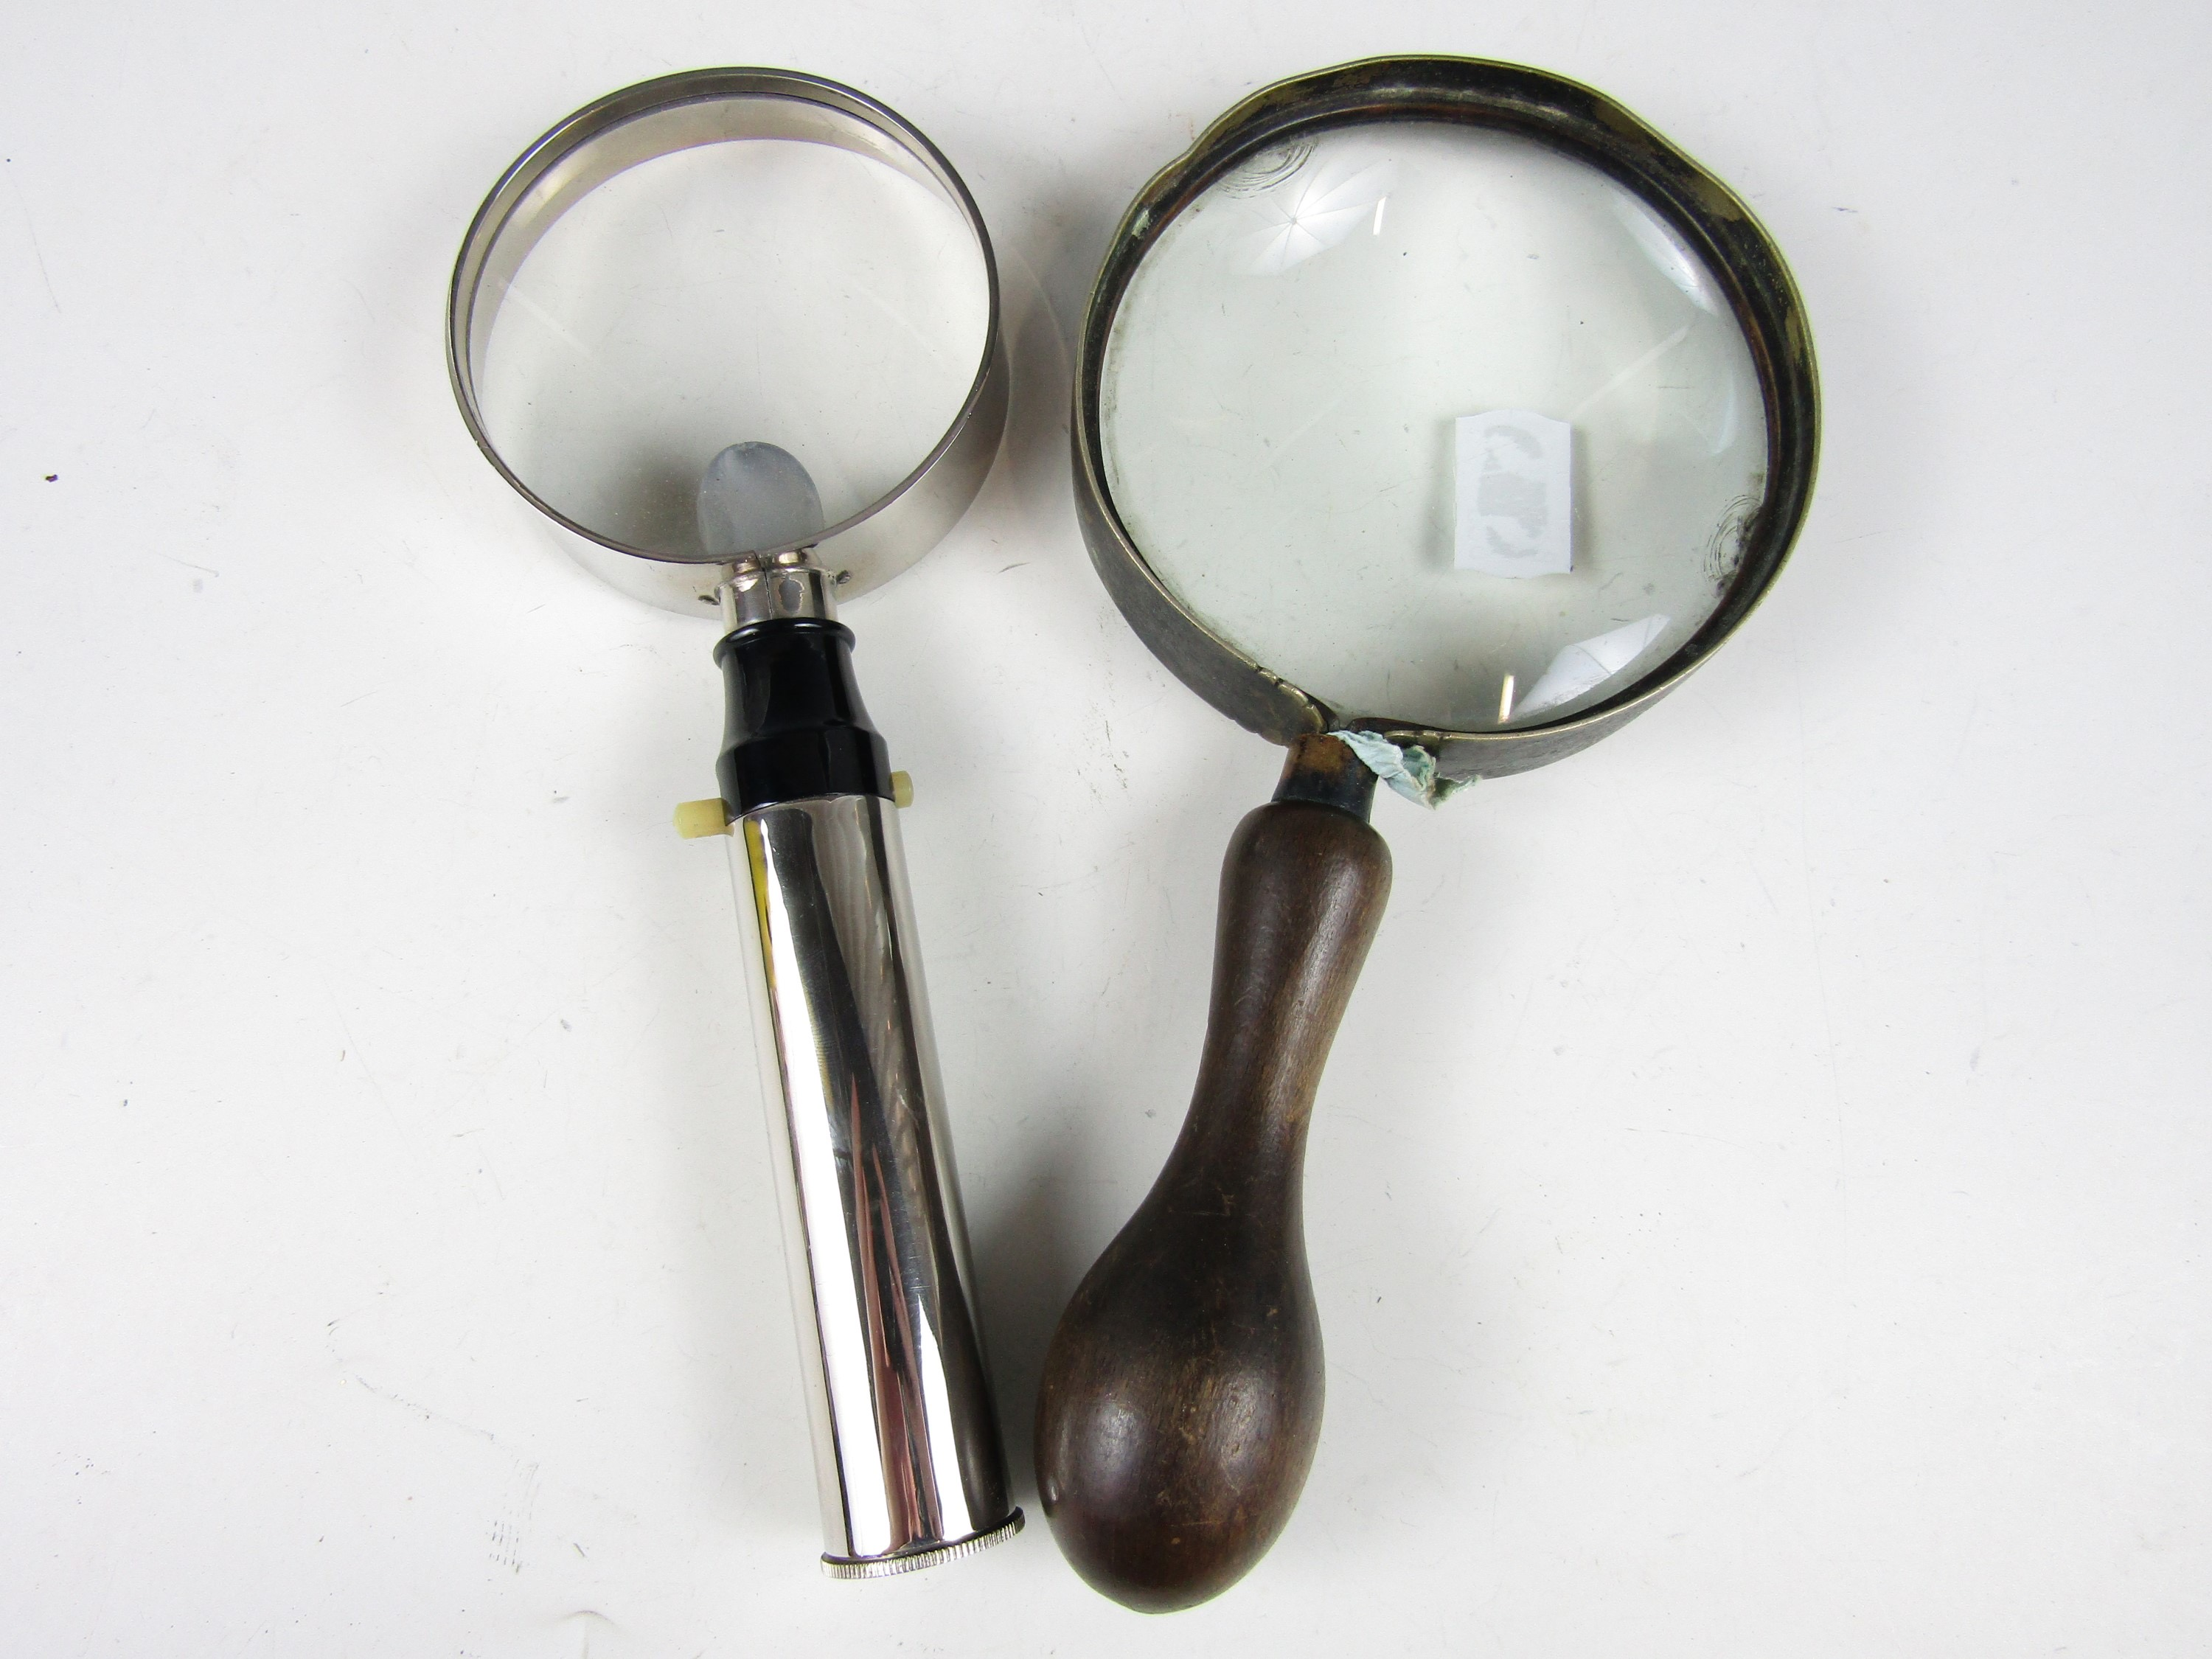 Lot 48 - A late 19th / early 20th century magnifying glass together with an Enbeeco Magnalite